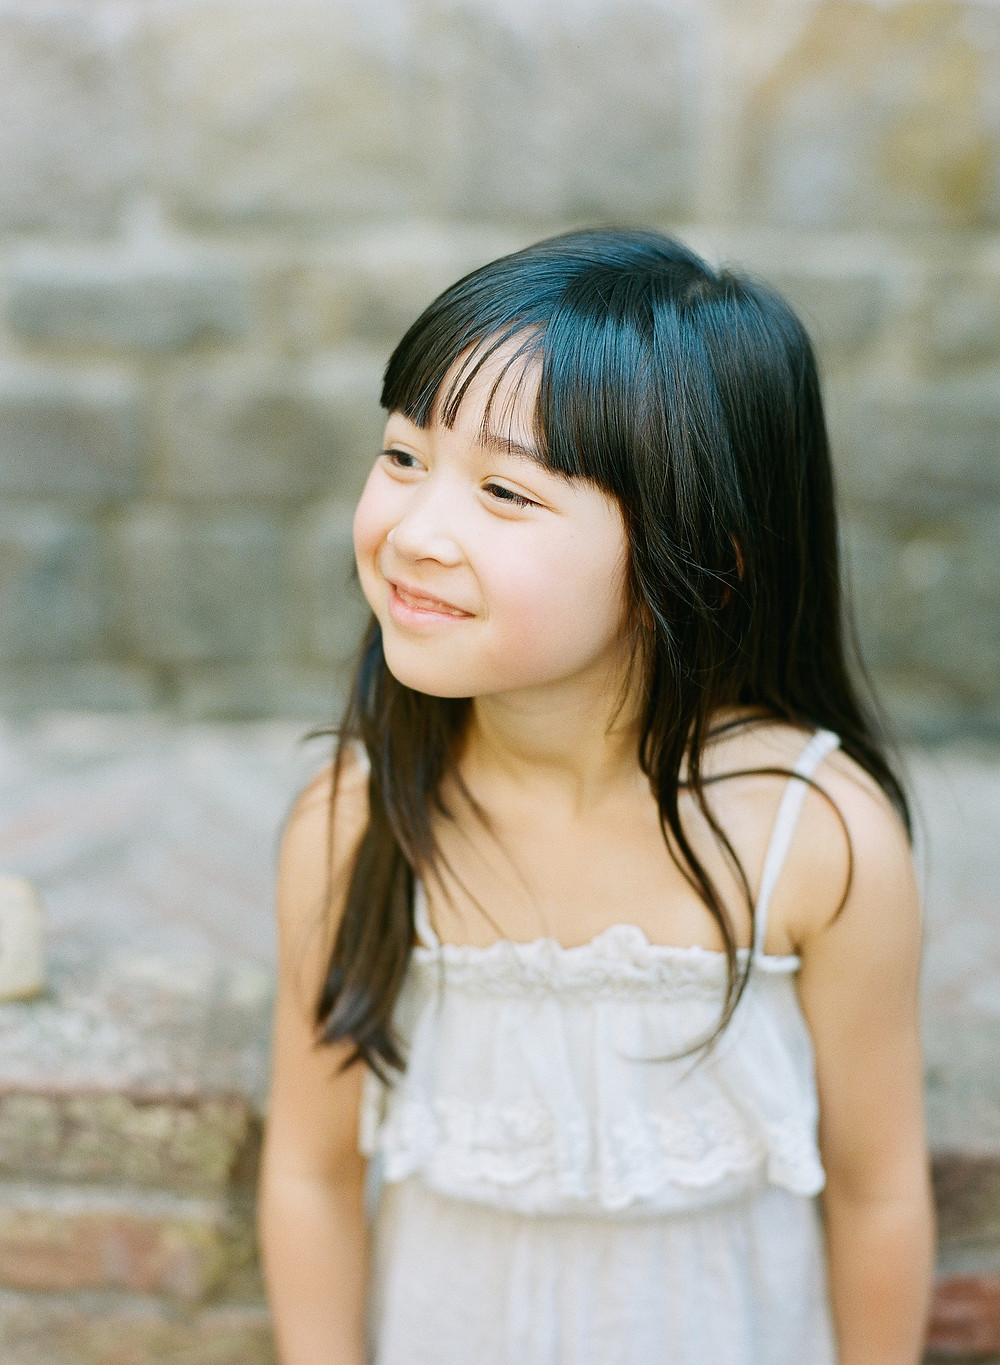 Little girl with black hair looking away smiling wearing a while dress at Castello di Amorosa